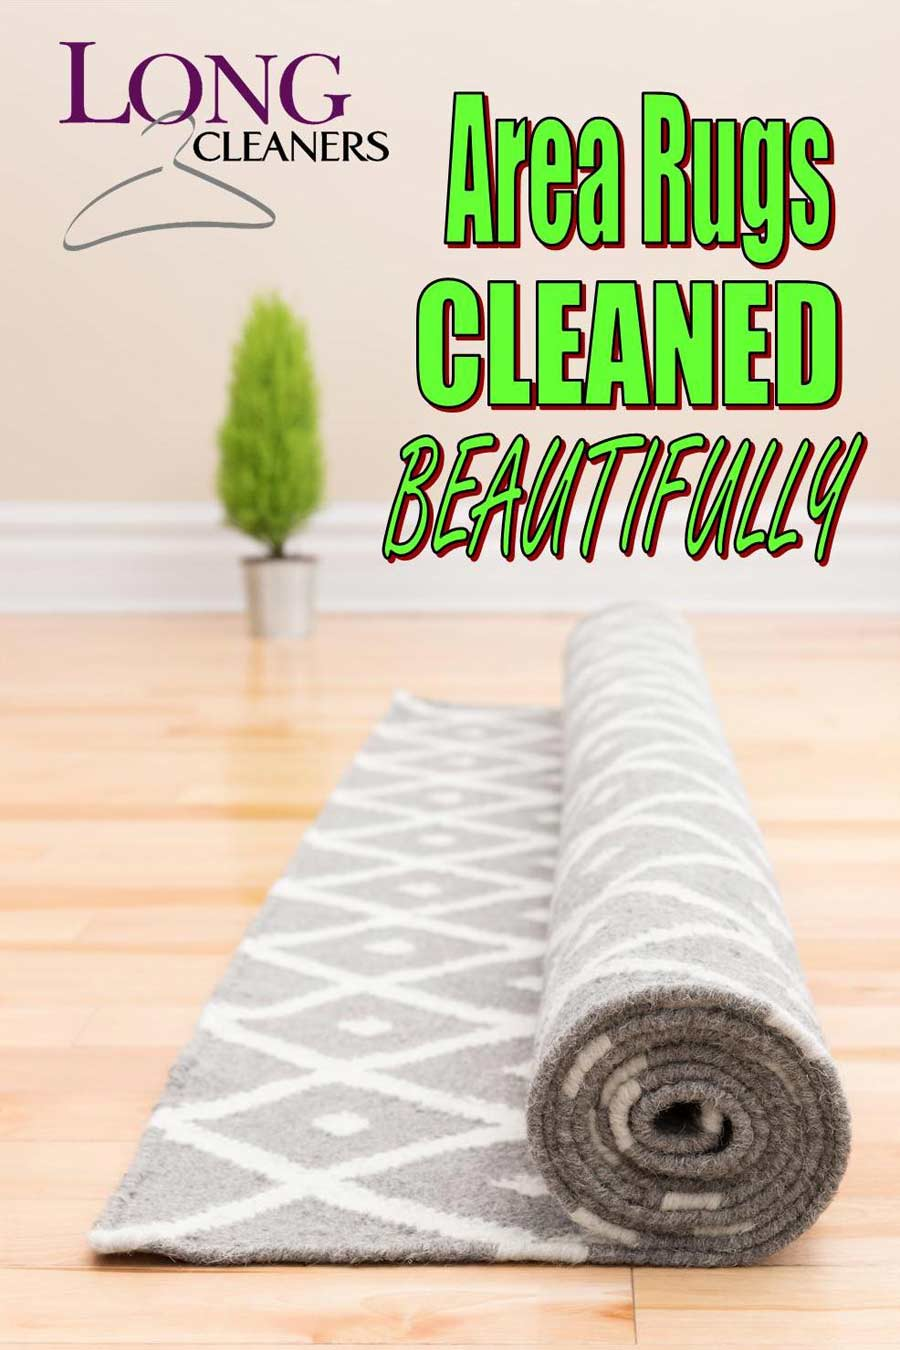 Area Rug Cleaning Services - Long Cleaners - Dayton Ohio - 937-866-4341